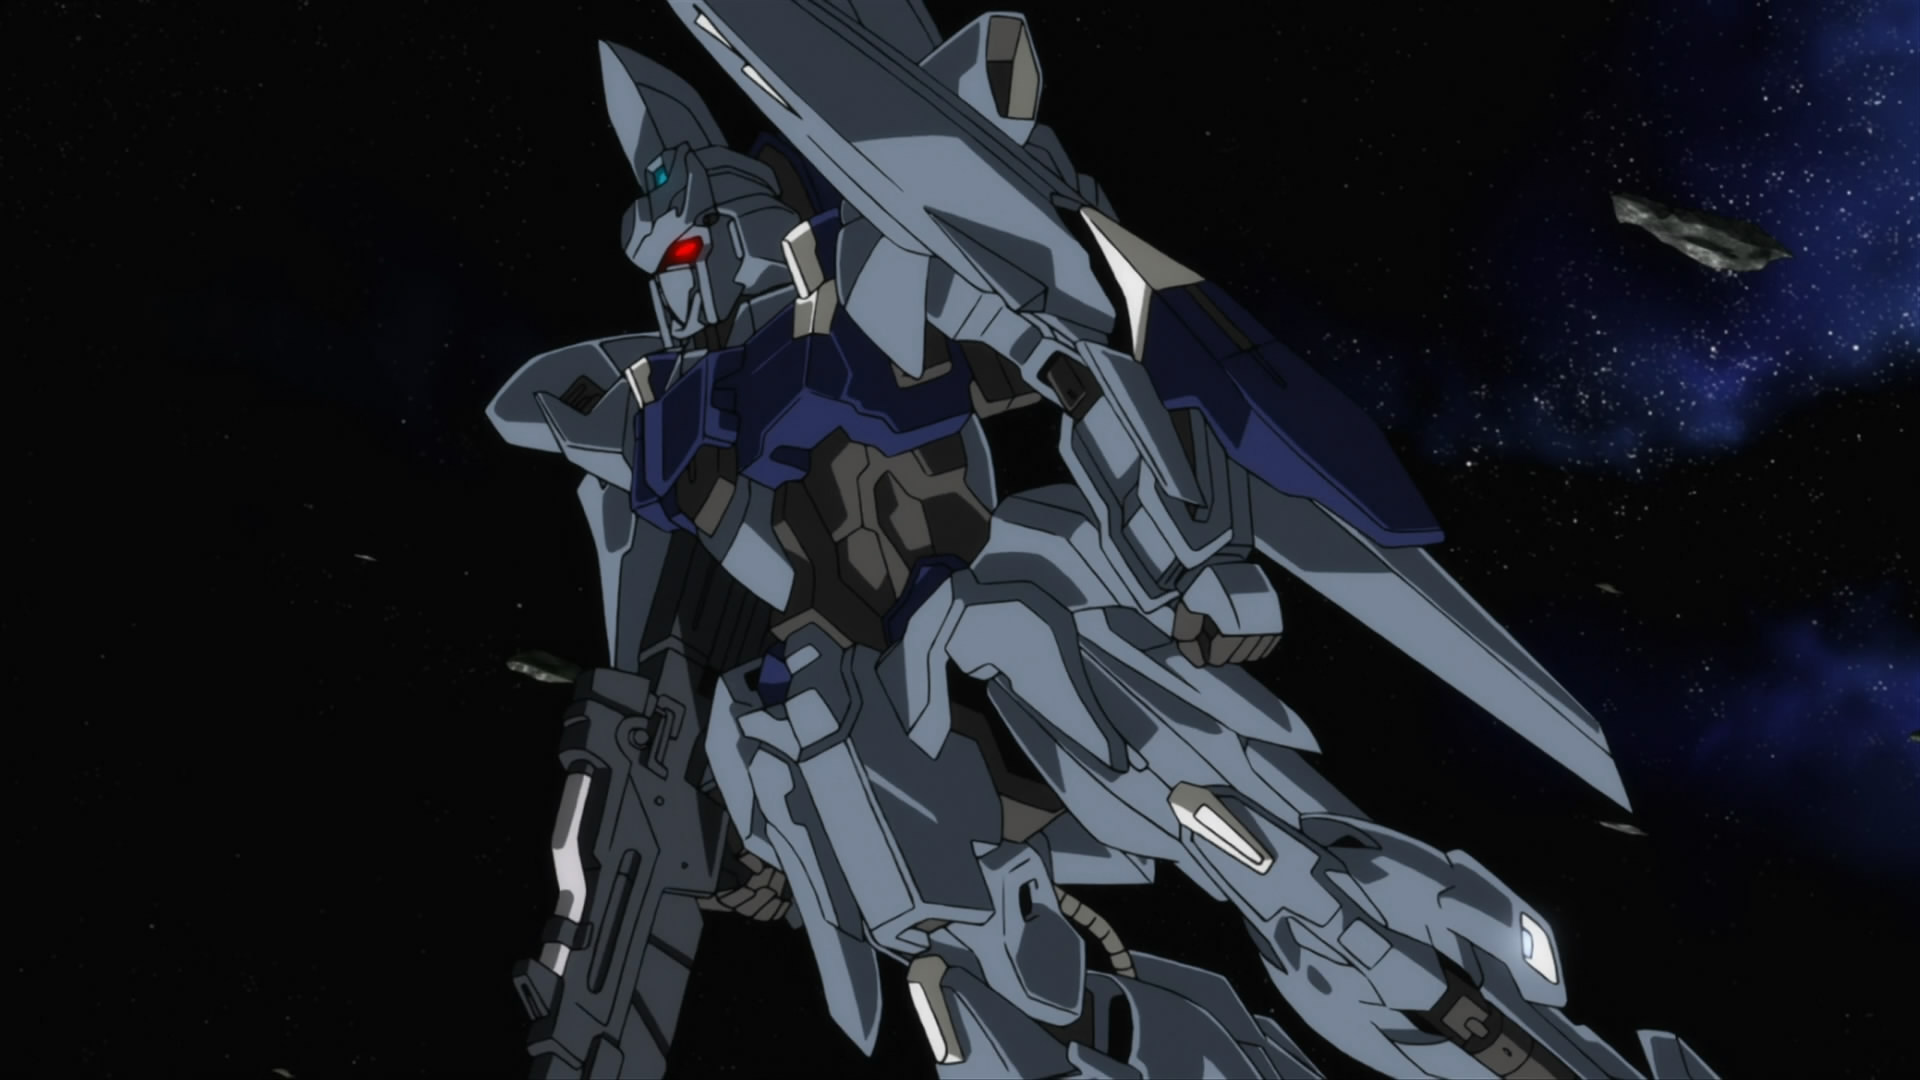 gundam wallpapers hd desktop wallpapers gundam wallpapers 110 jpg 1920x1080